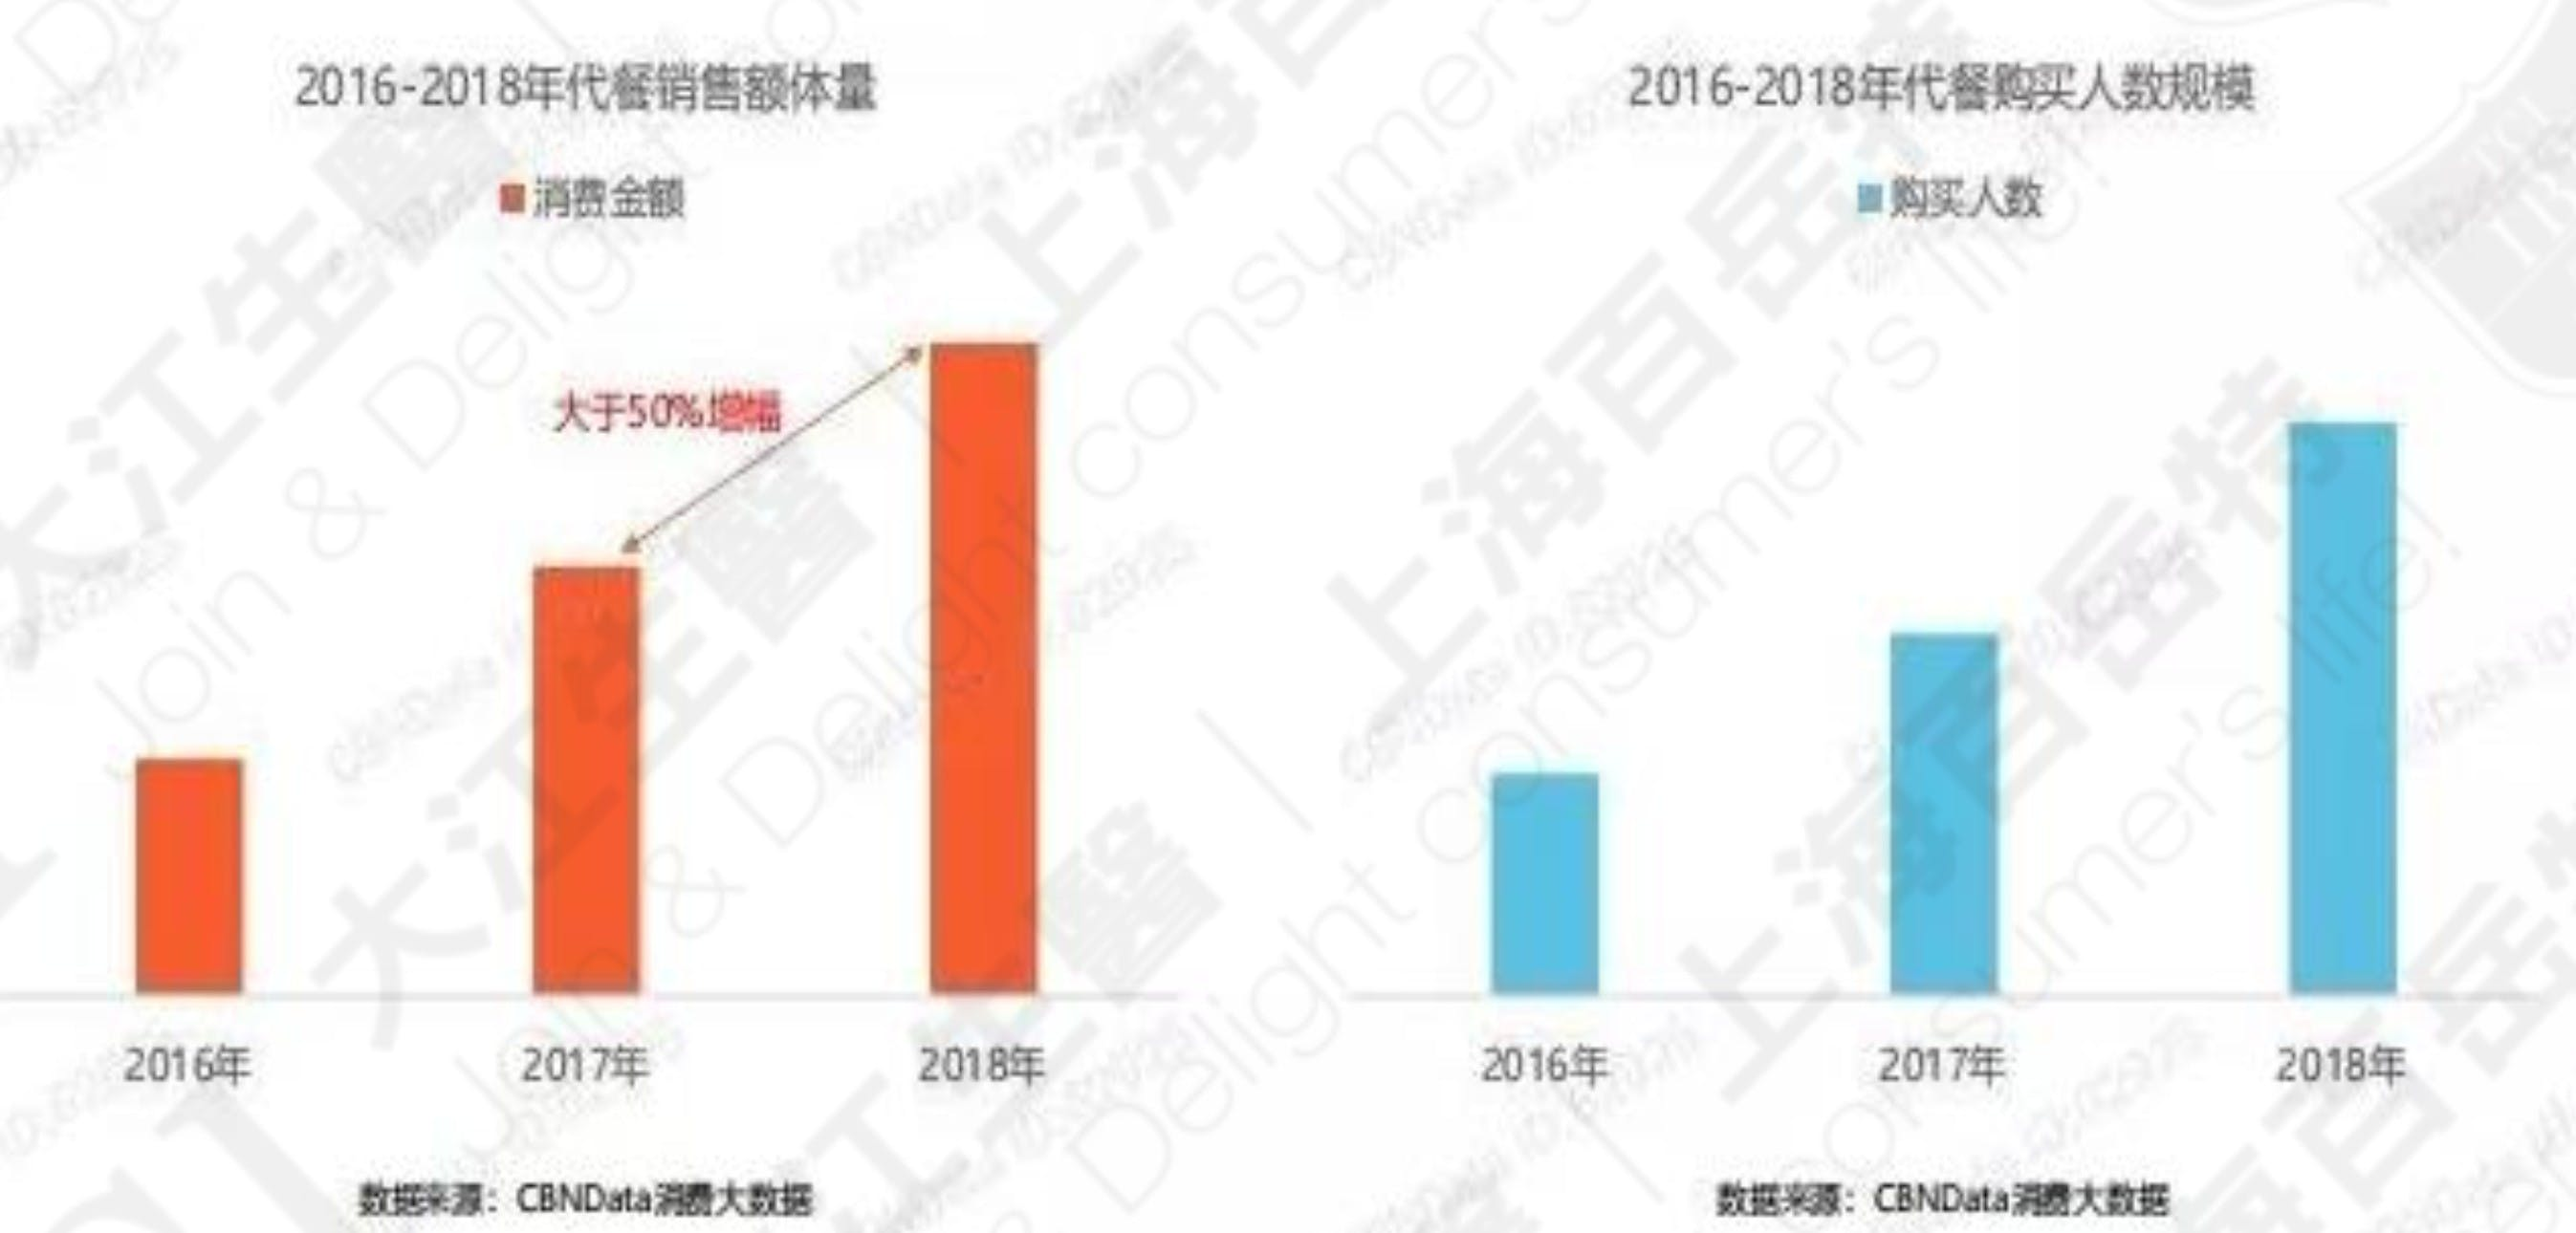 The number of meal replacements products sold on Tmall from 2016 to 2018, Data Source: Tmall